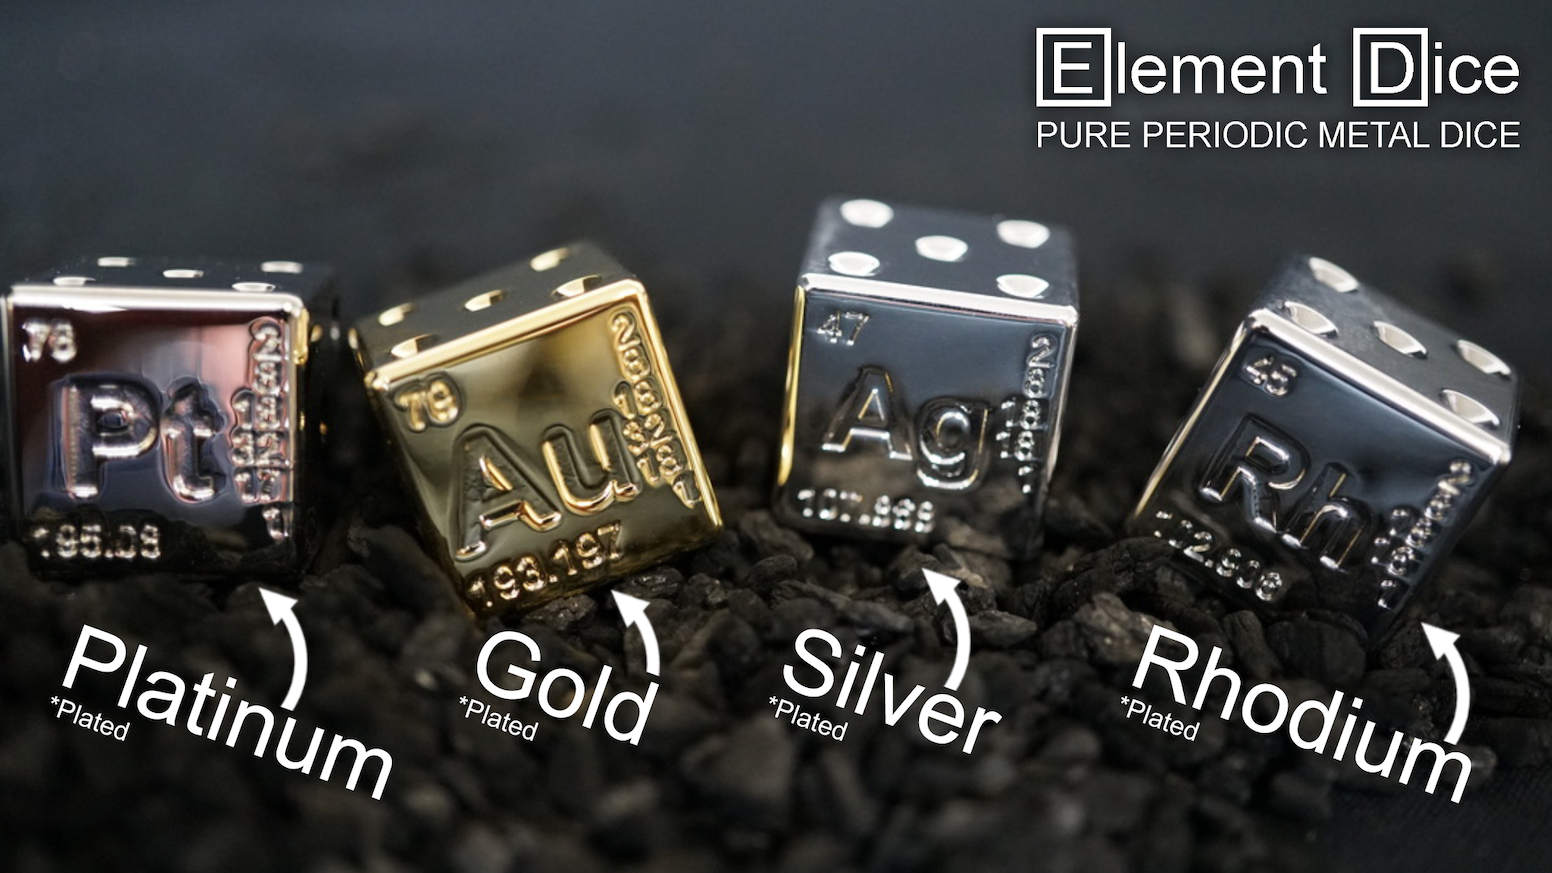 100% pure precious metal plated over solid brass. Dice inspired by the periodic table of elements!